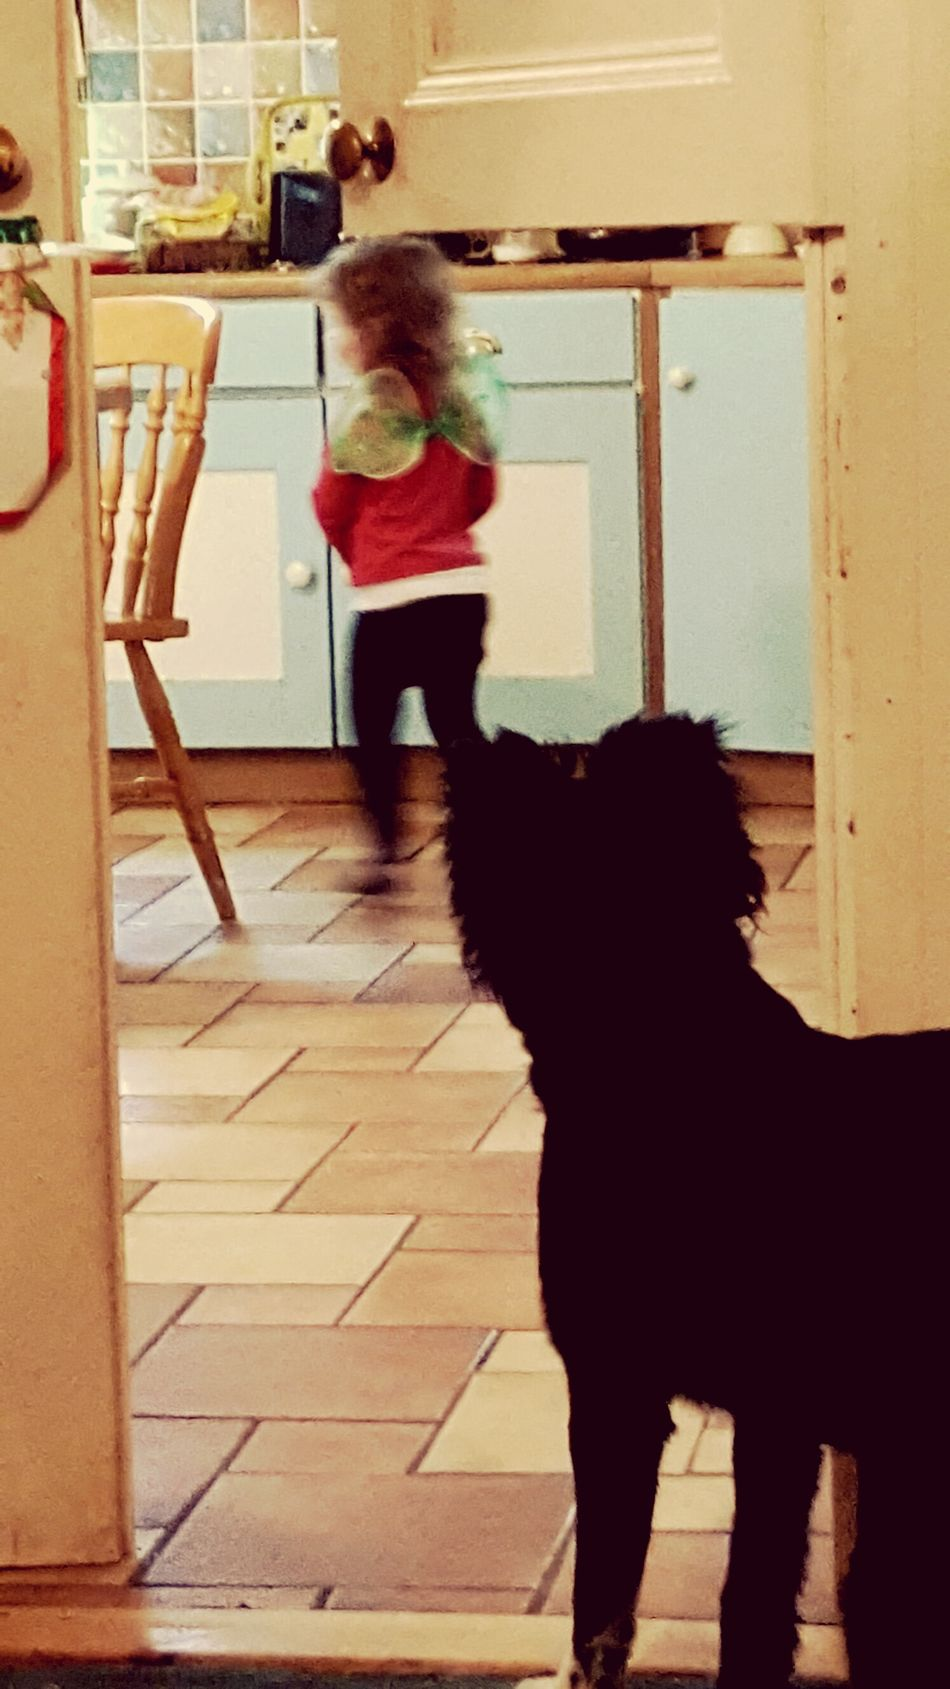 Crazygirl Domestic Animals Indoors  Motion Whats This? Confusedpuppy Fairy Tail One Animal Pets Littlemonsters